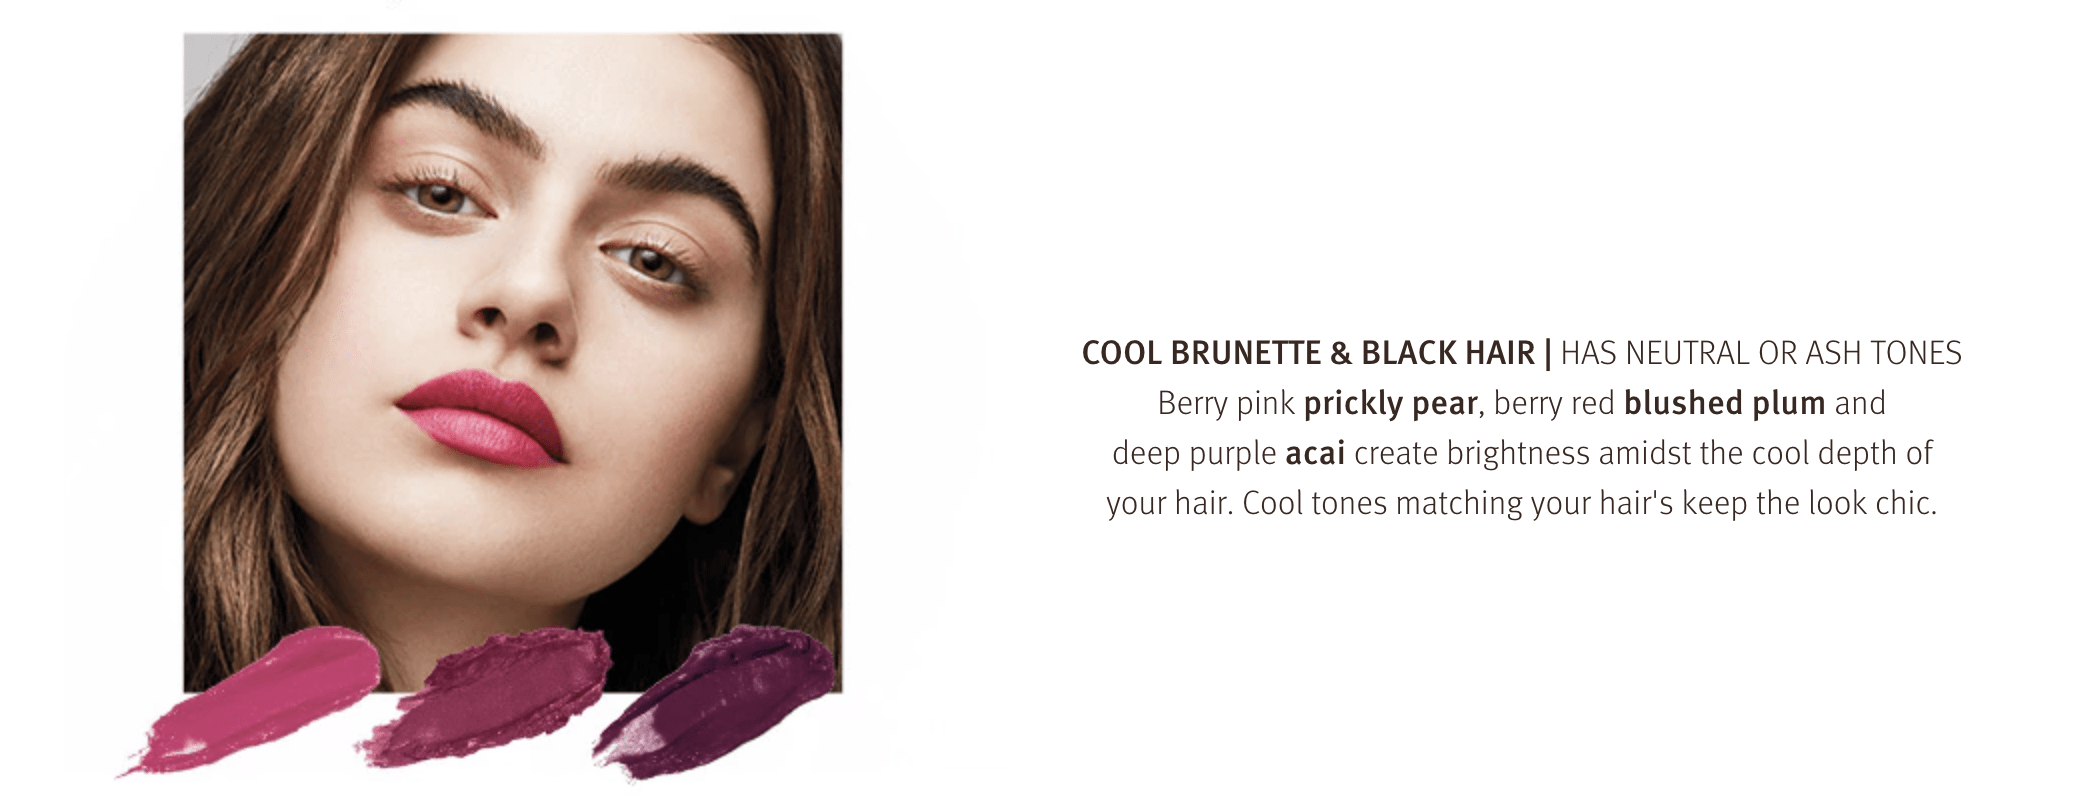 Cool brunette and black hair has neutral or ash tones. find your perfect lip colour at Zucci!